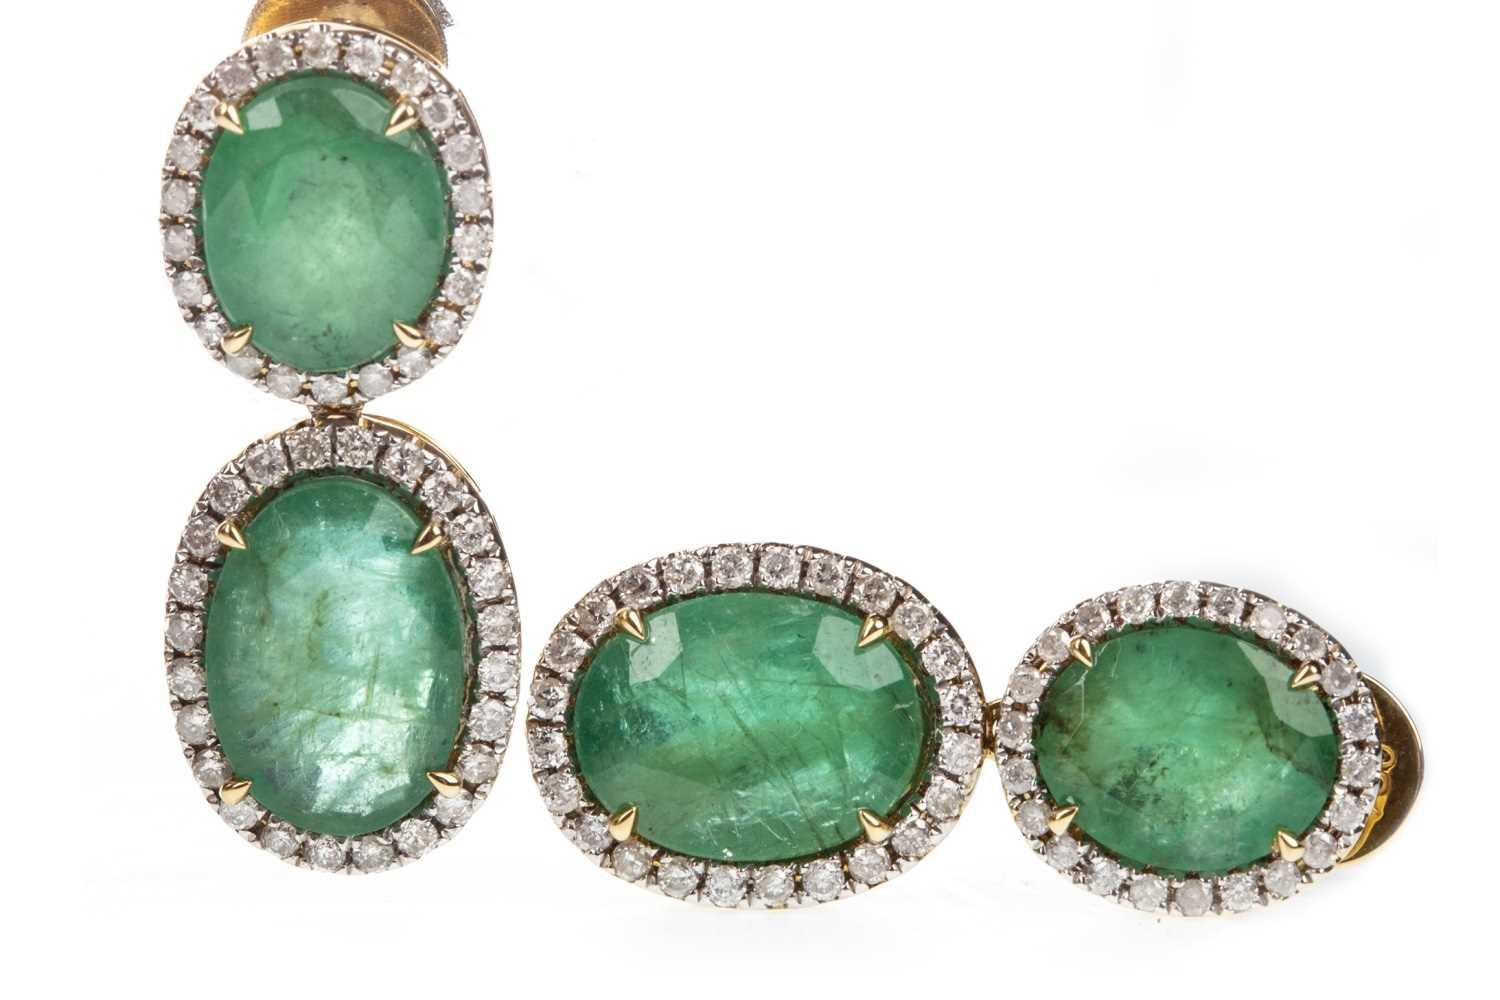 Lot 19-A PAIR OF CERTIFICATED EMERALD AND DIAMOND EARRINGS